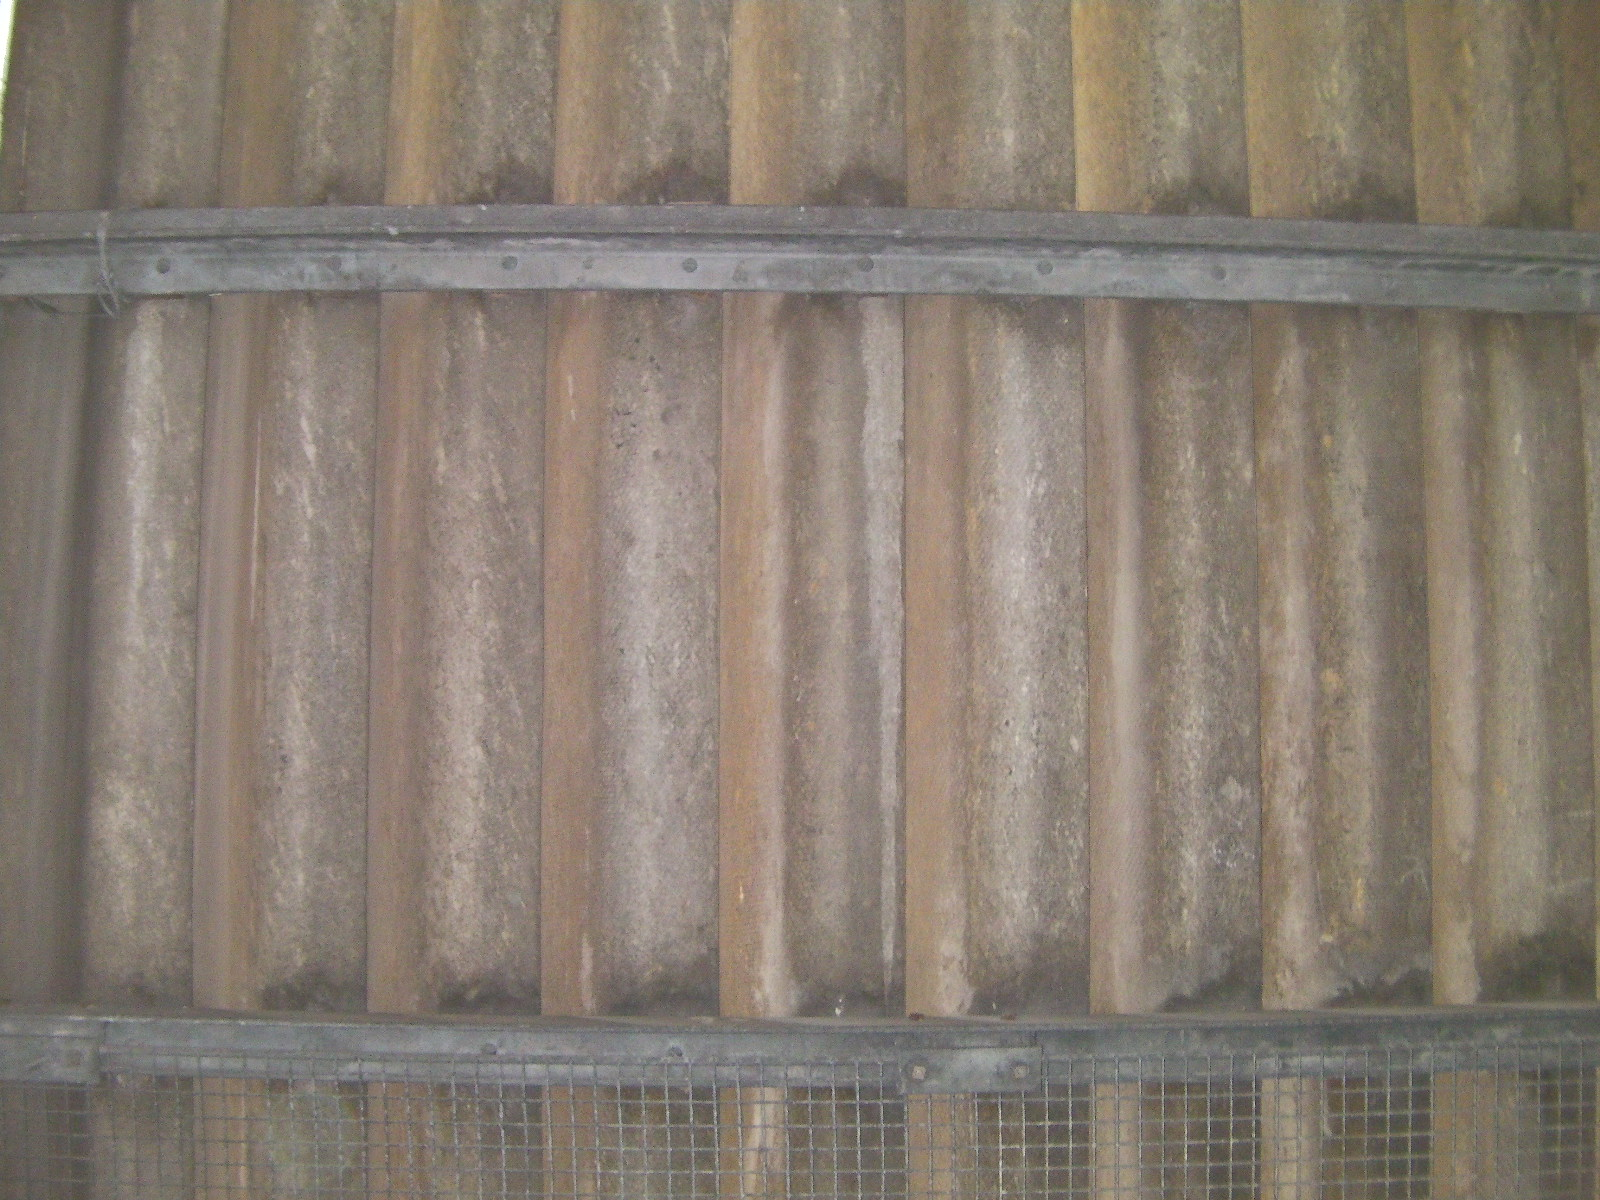 asbestos-containing-cement-wall-panels